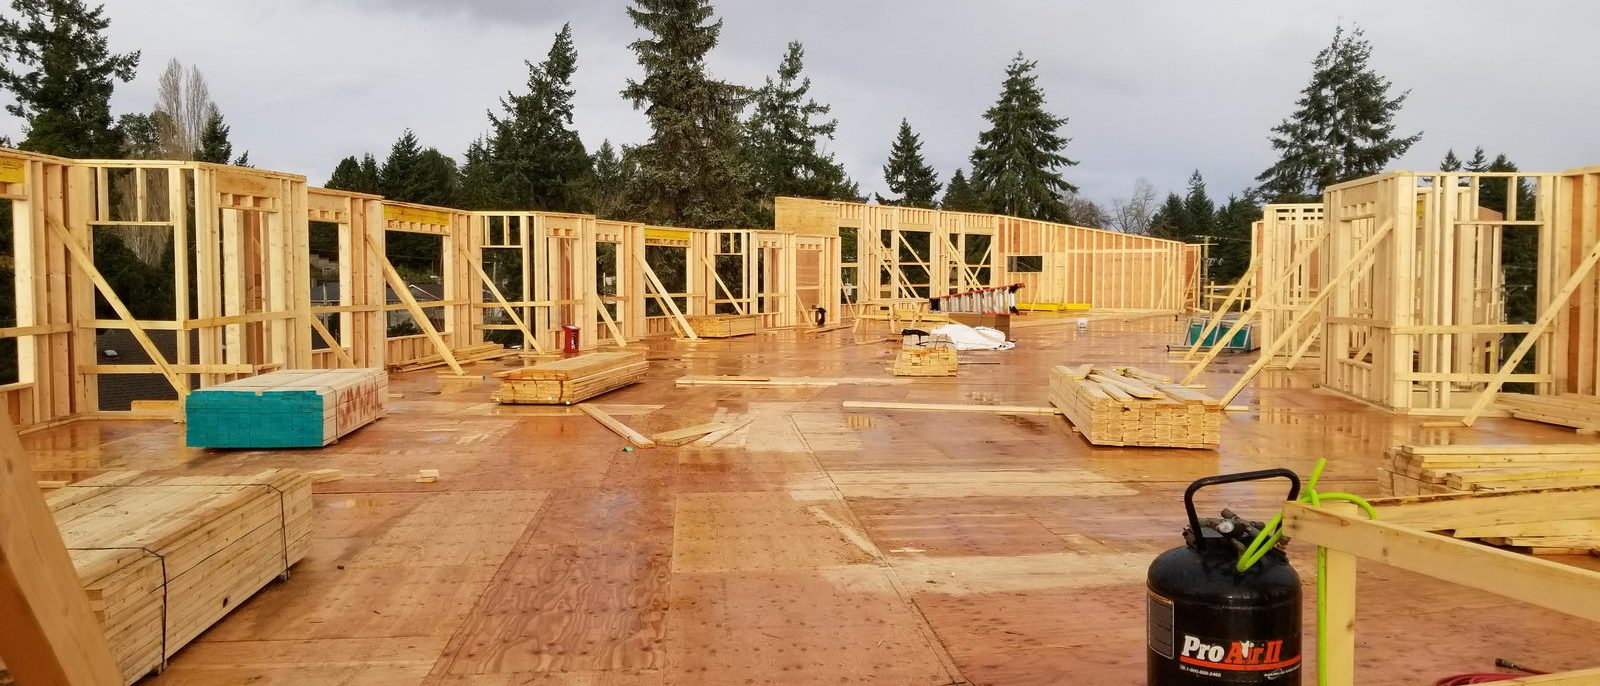 Framing exterior of apartment building construction project on Vancouver Island, BC